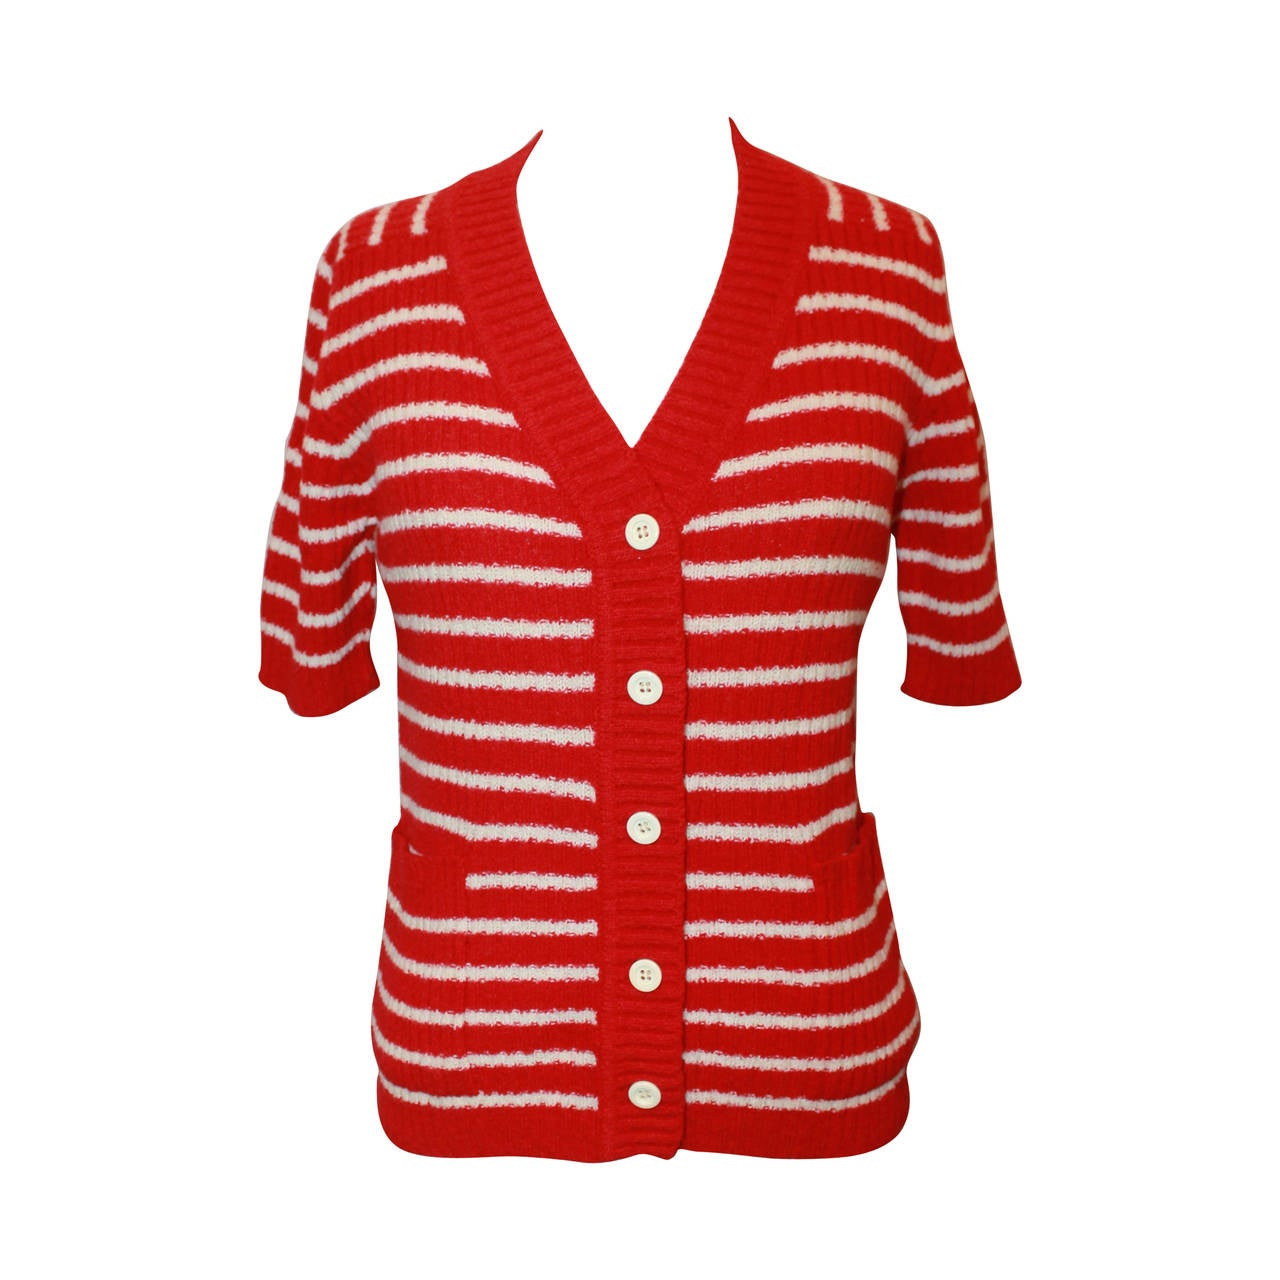 Lanvin 1970's Red & White Striped Wool Blend Short Sleeve Cardigan - 42 1